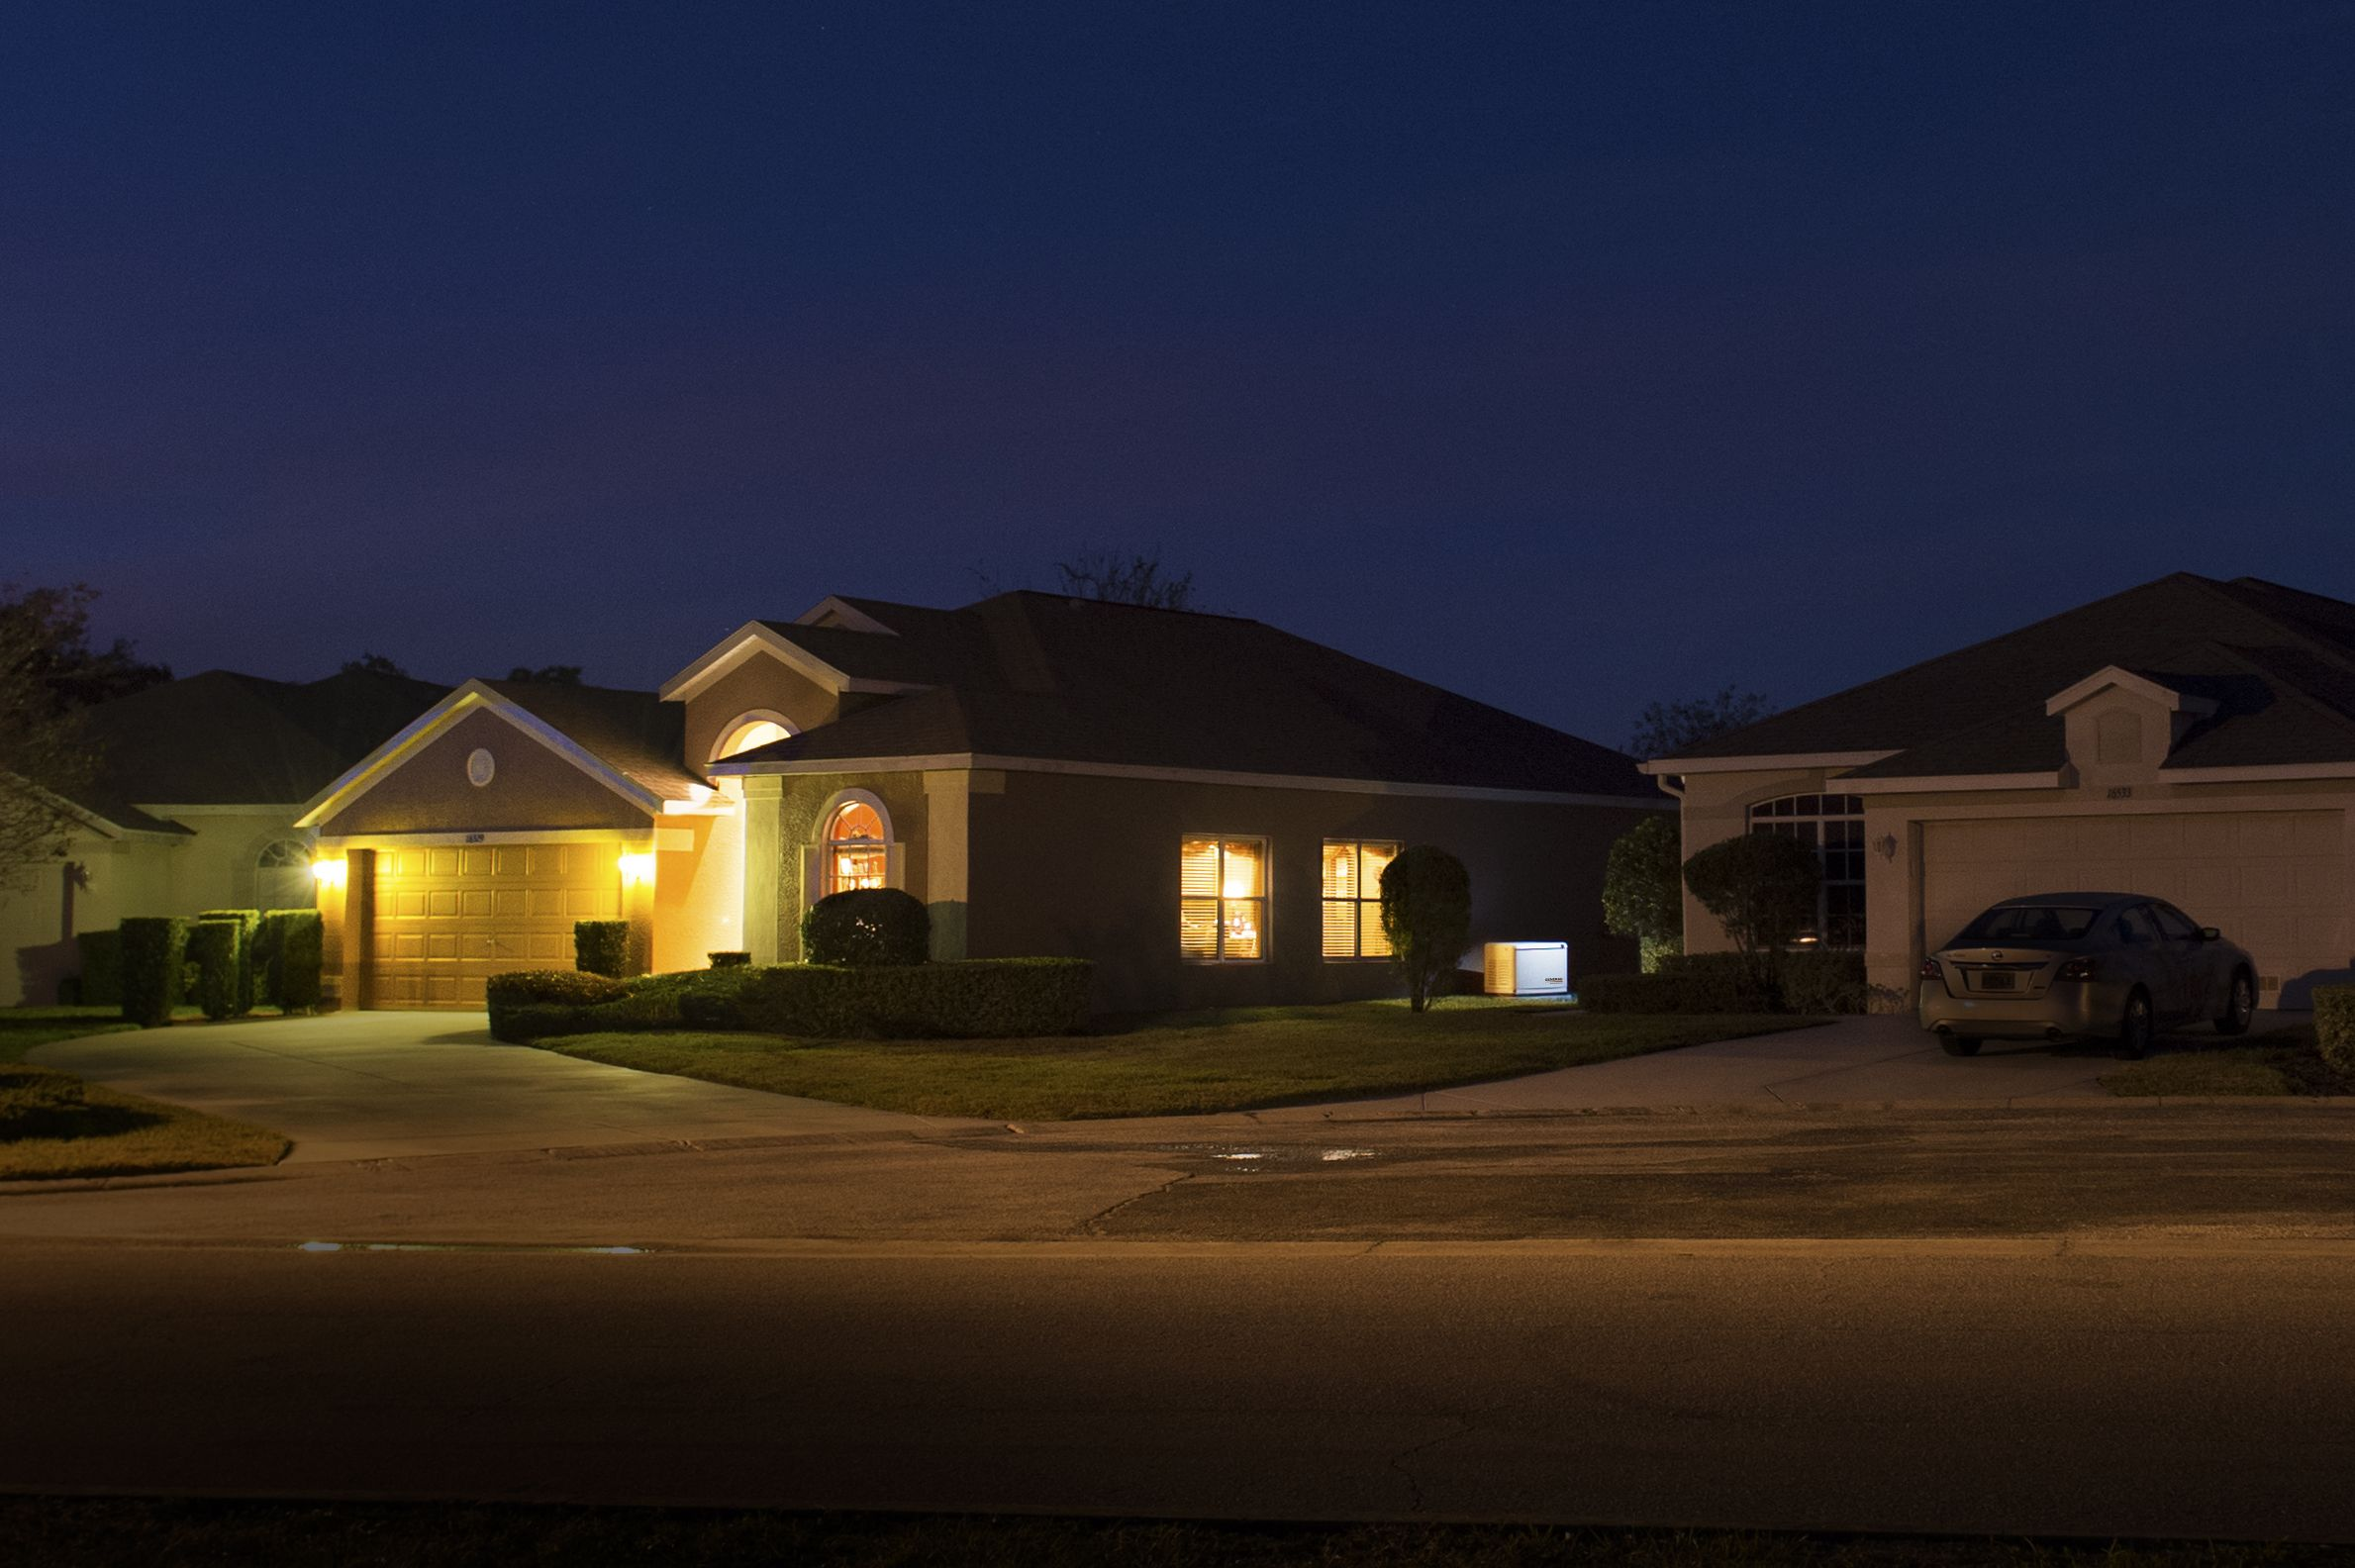 The neighborhood is dark but not the home with a Generac generator